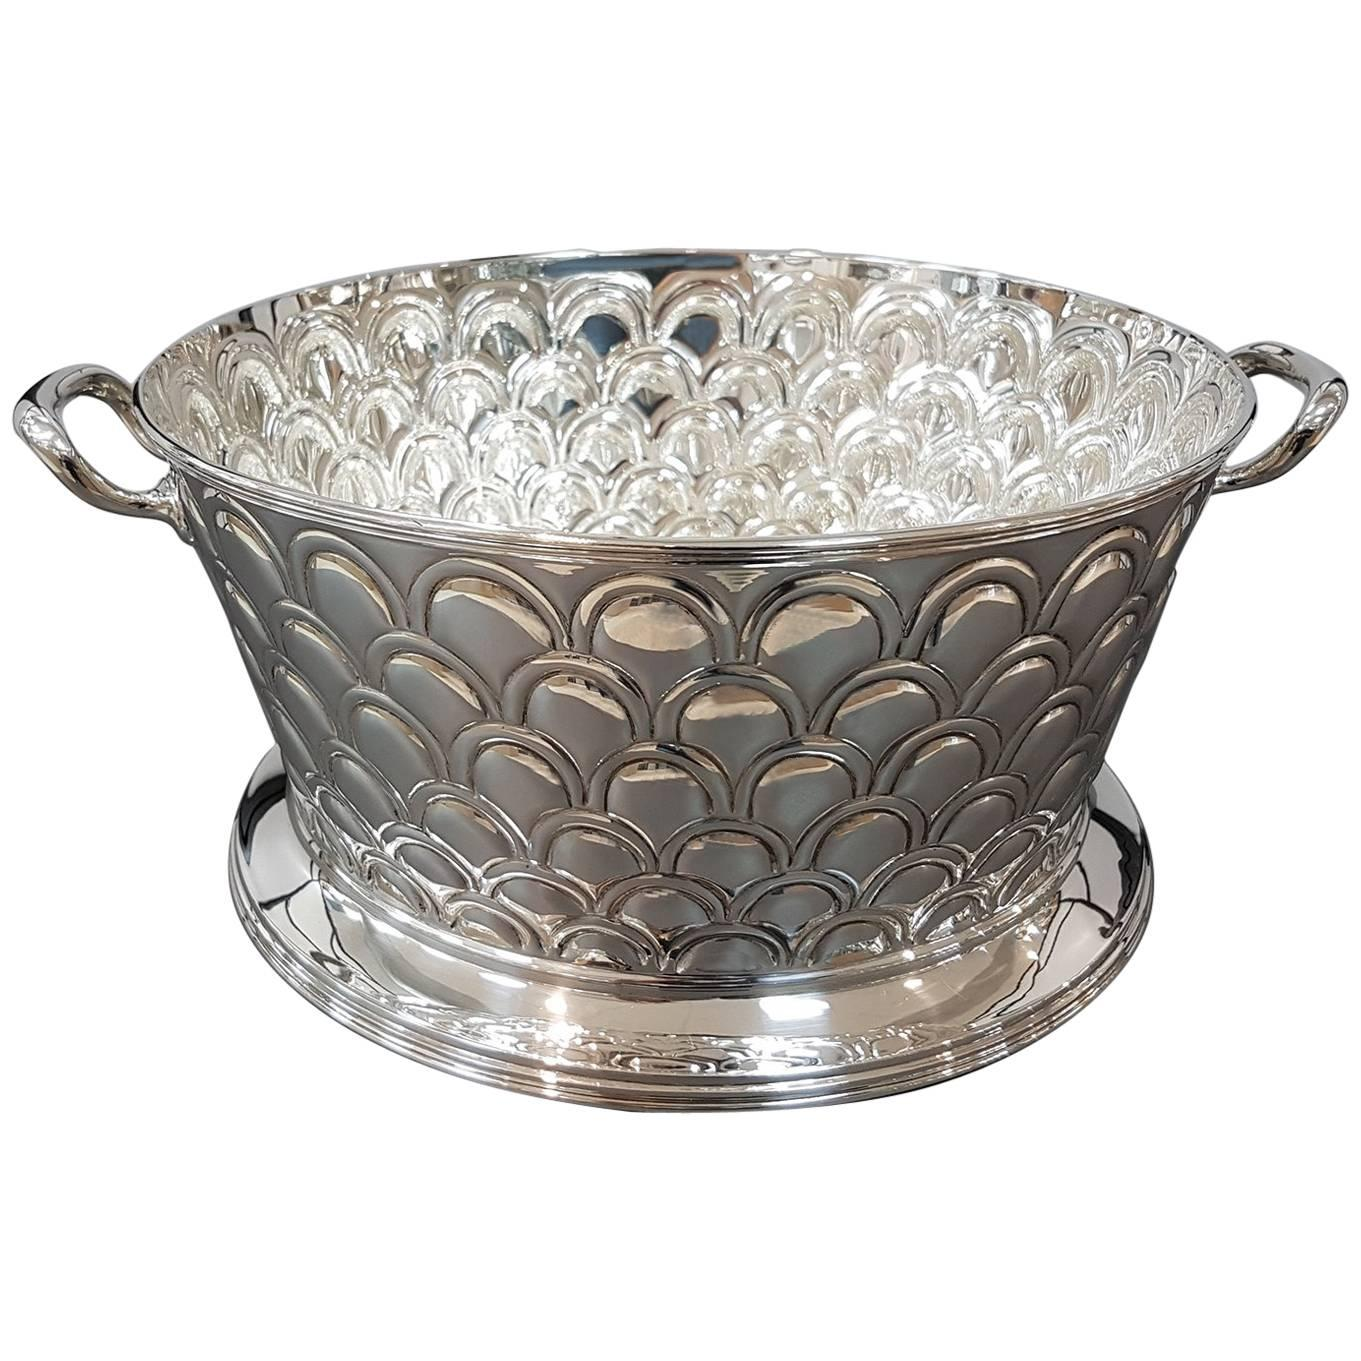 20th Century Italian Silver Round basket with handles. Handicraft made in Italy